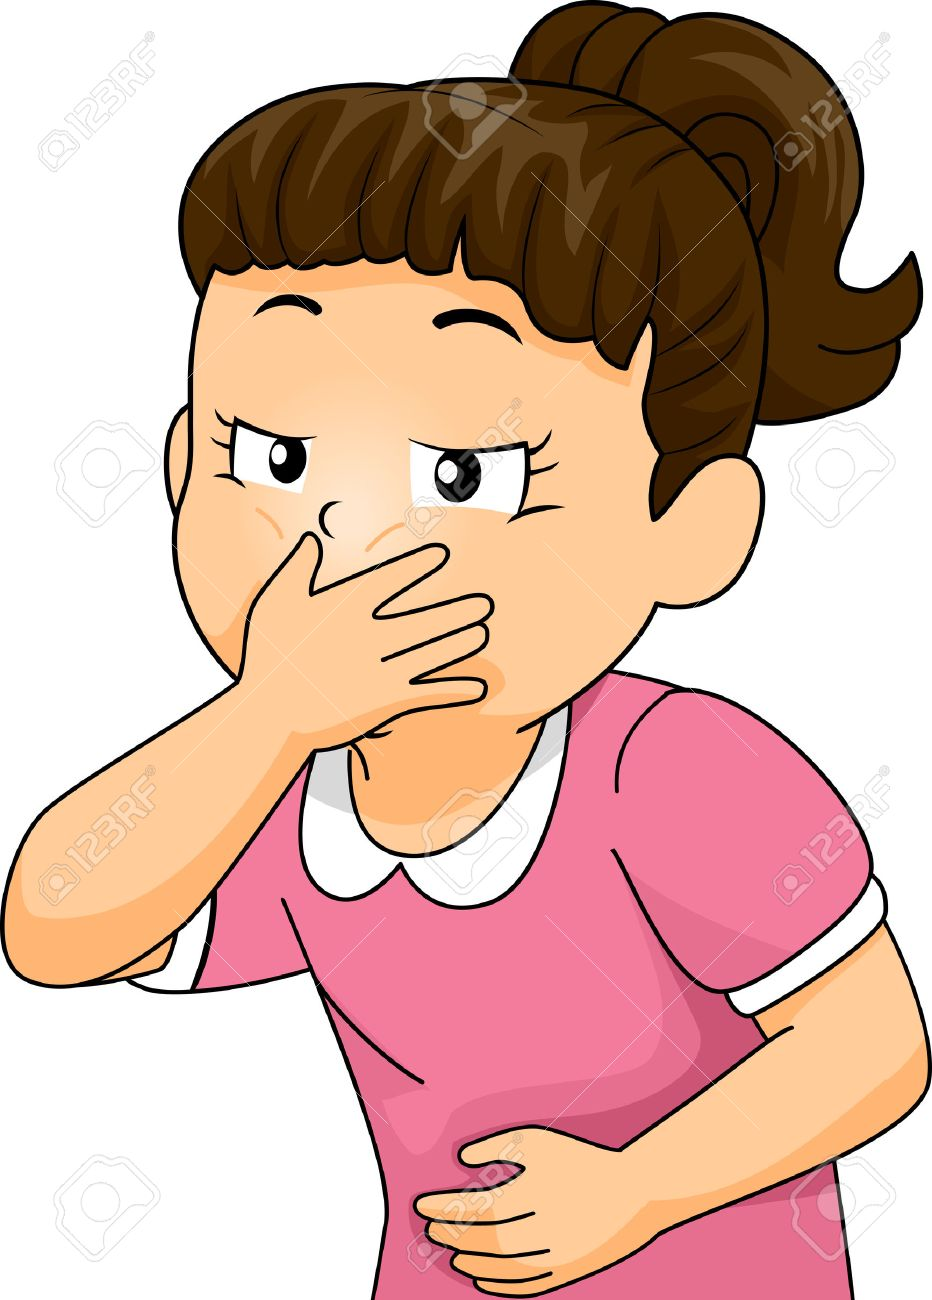 illustration of a little girl about to throw up covering her.. stock